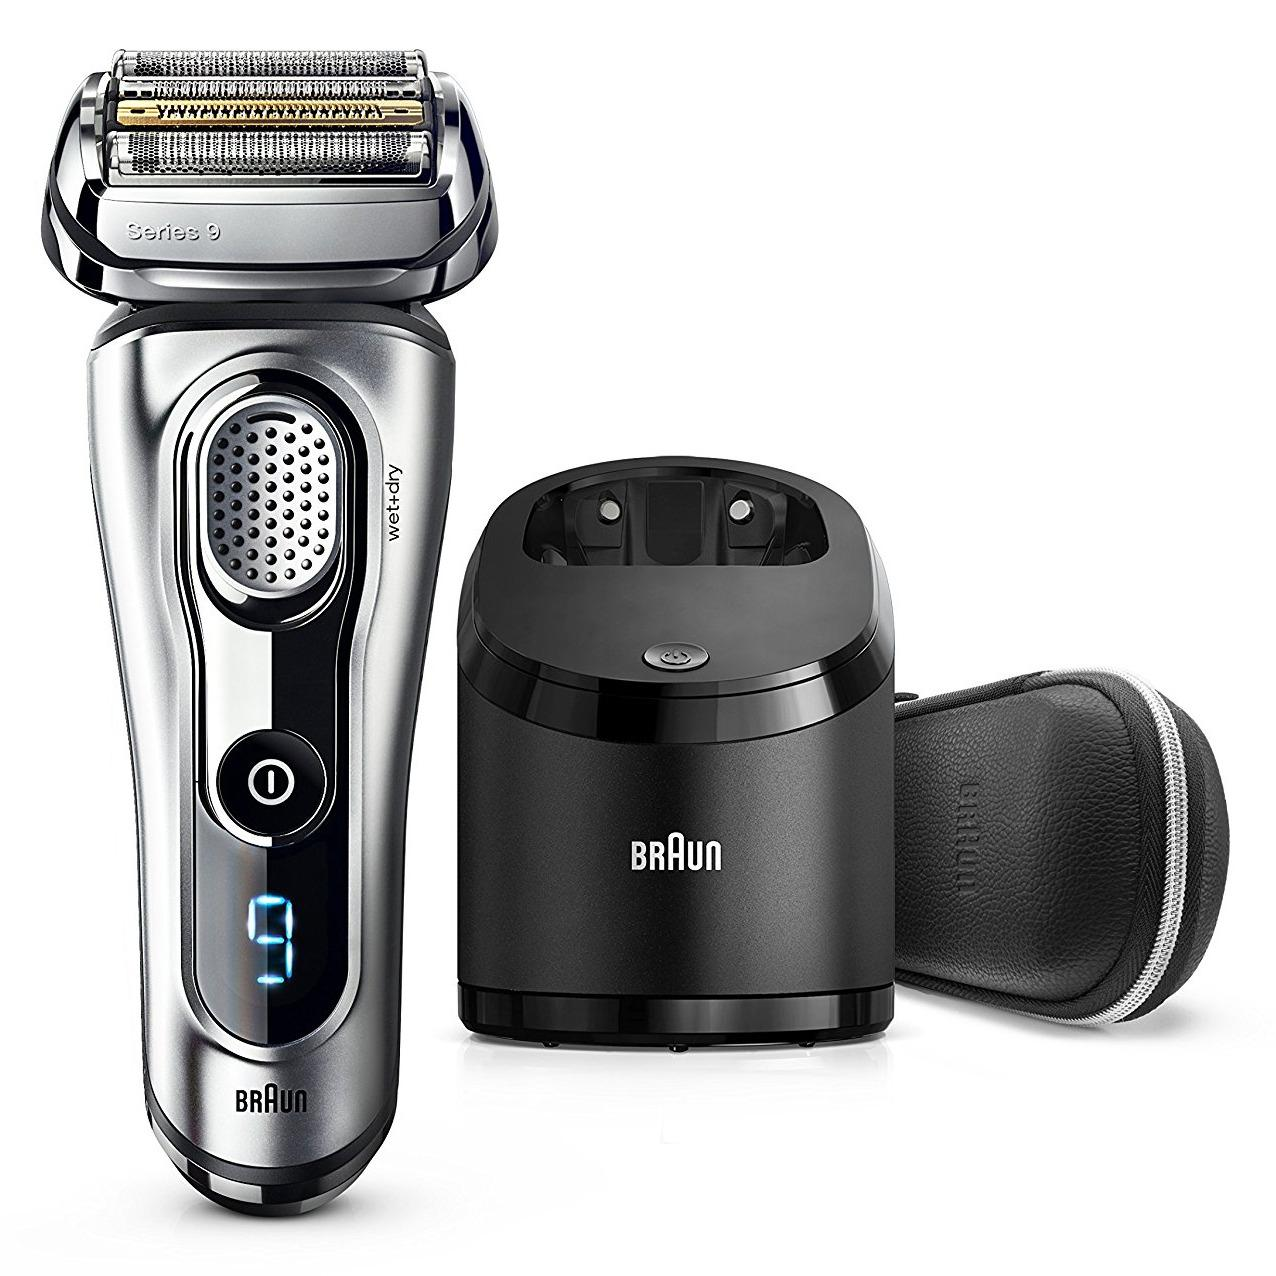 Buy Braun Series 9 9296Cc Men S Electric Foil Shaver Wet And Dry Leather Case Edition With Clean And Renew Charge Station Pop Up Trimmer Rechargeable And Cordless Razor Chrome Braun